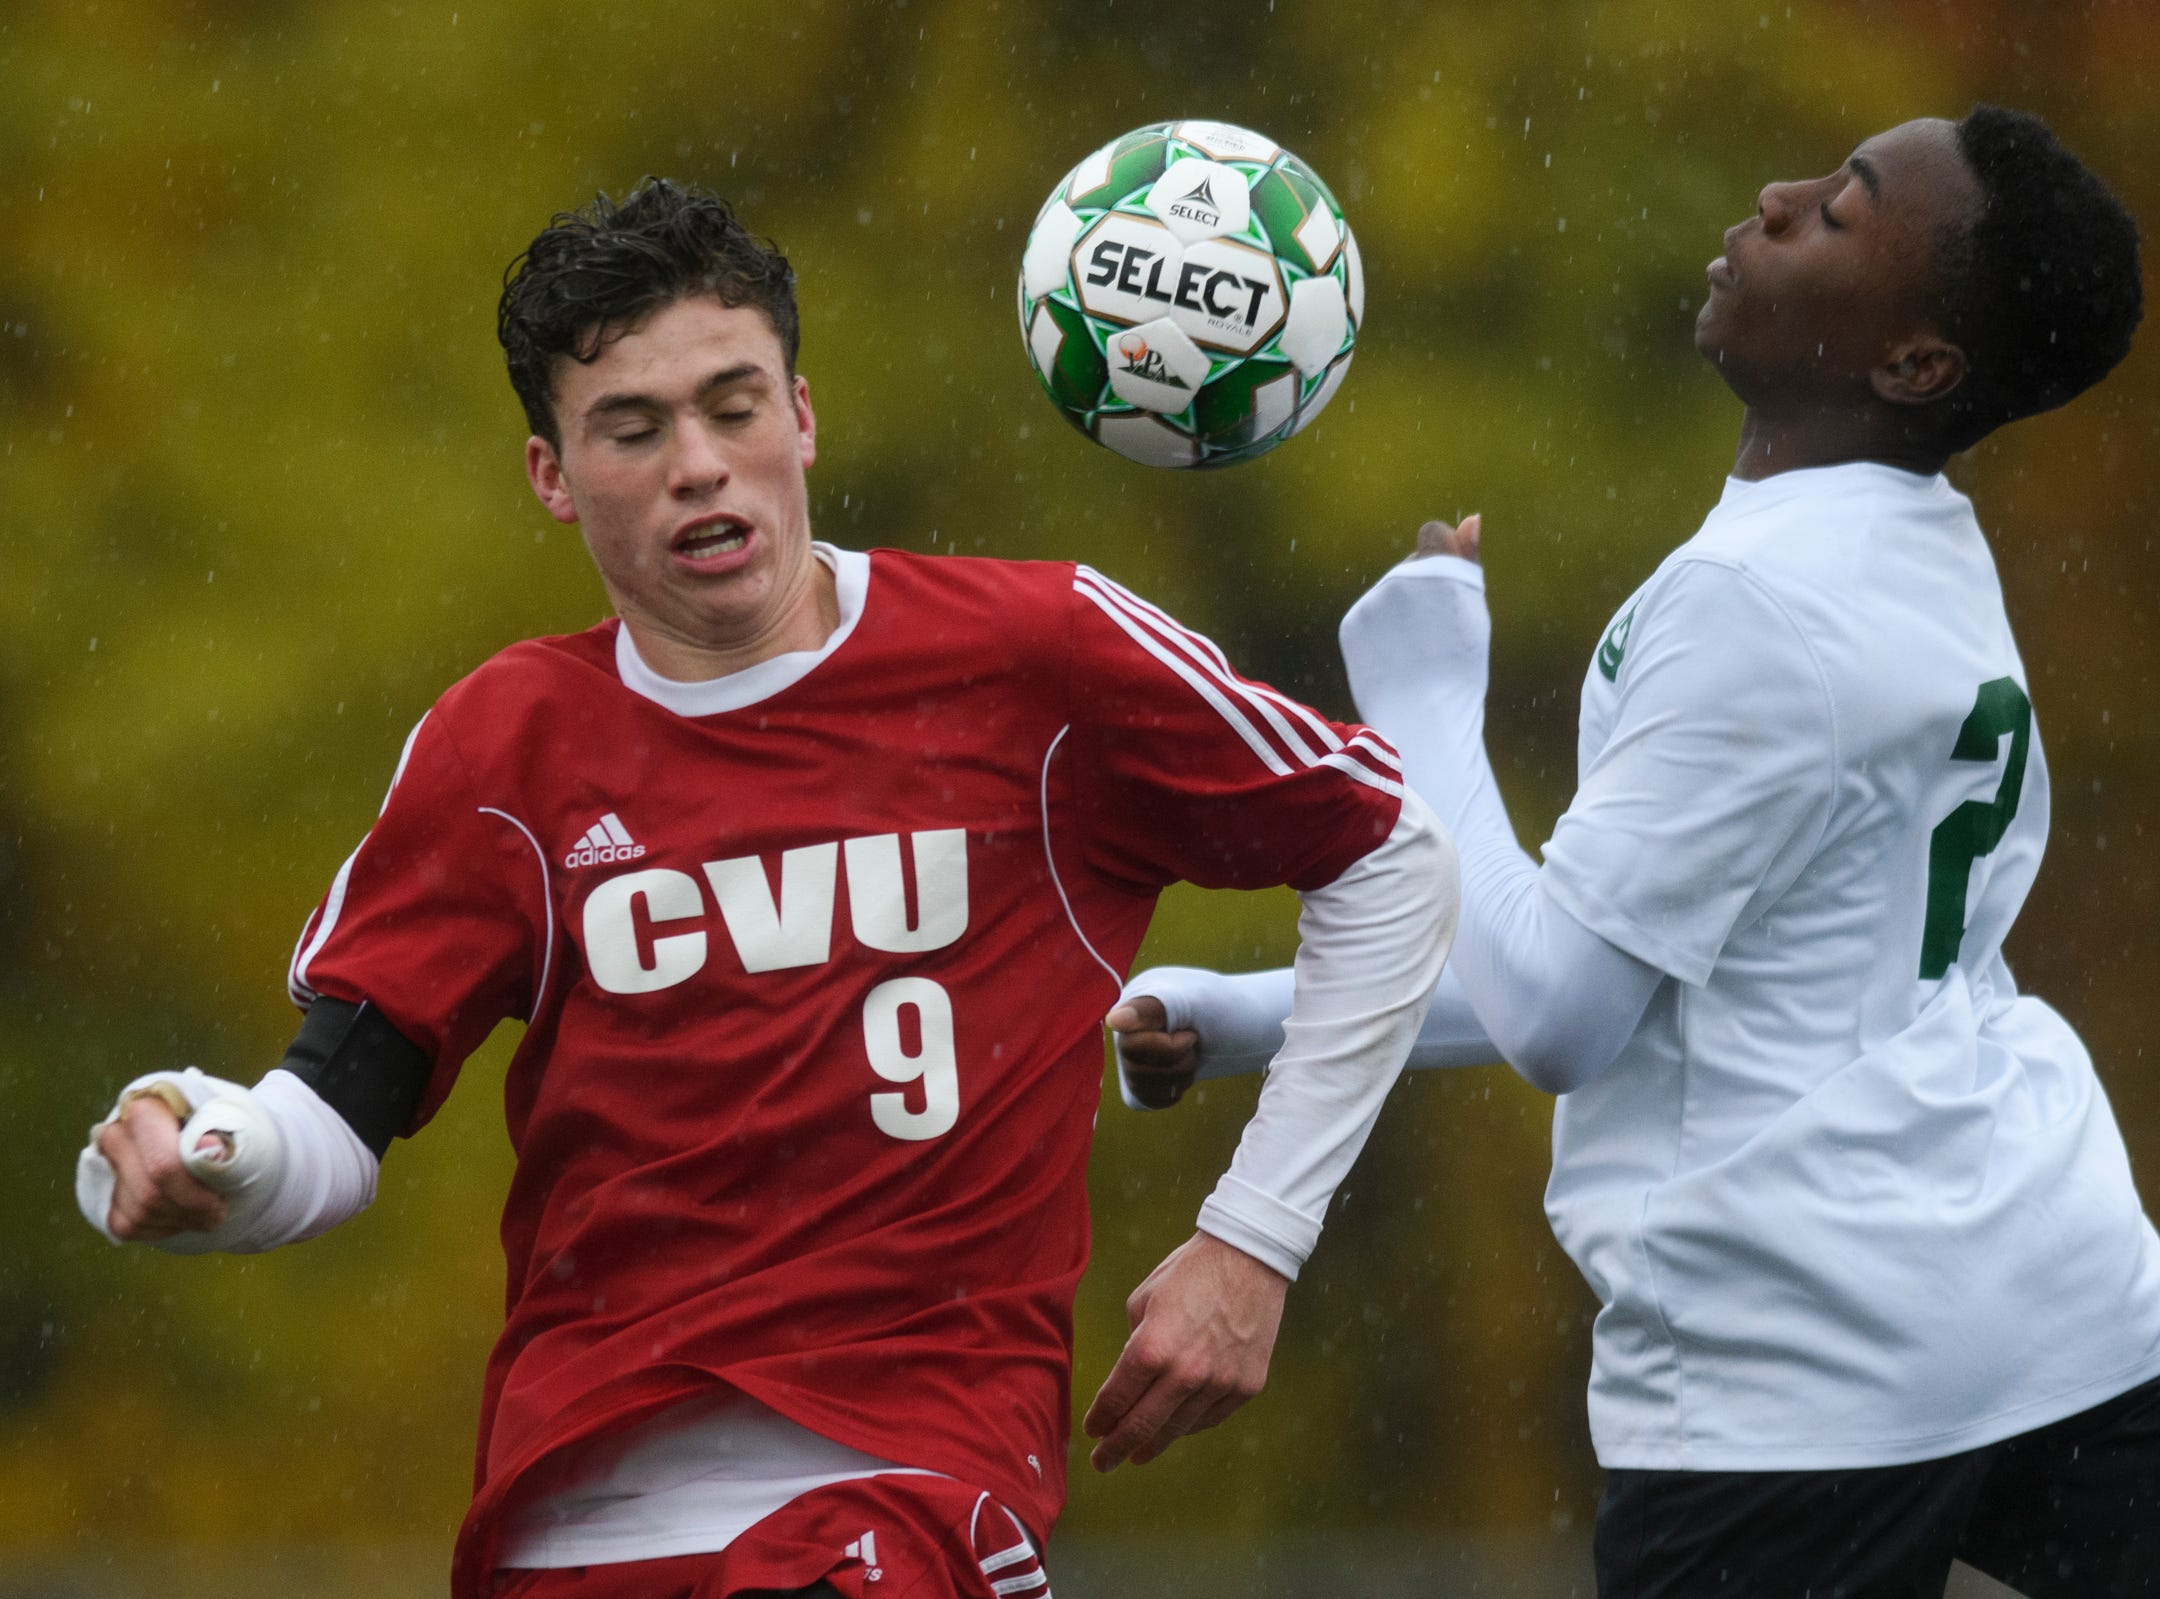 CVU's Jonah Roberts (9) and St. Johnsbury's Denzel Ebohon (21) battle to head the ball during the Division I boys soccer championship game between the St. Johnsbury Hilltoppers and the Champlain Valley Union Redhawks at Buck Hard Field on Saturday morning November 3, 2018 in Burlington.